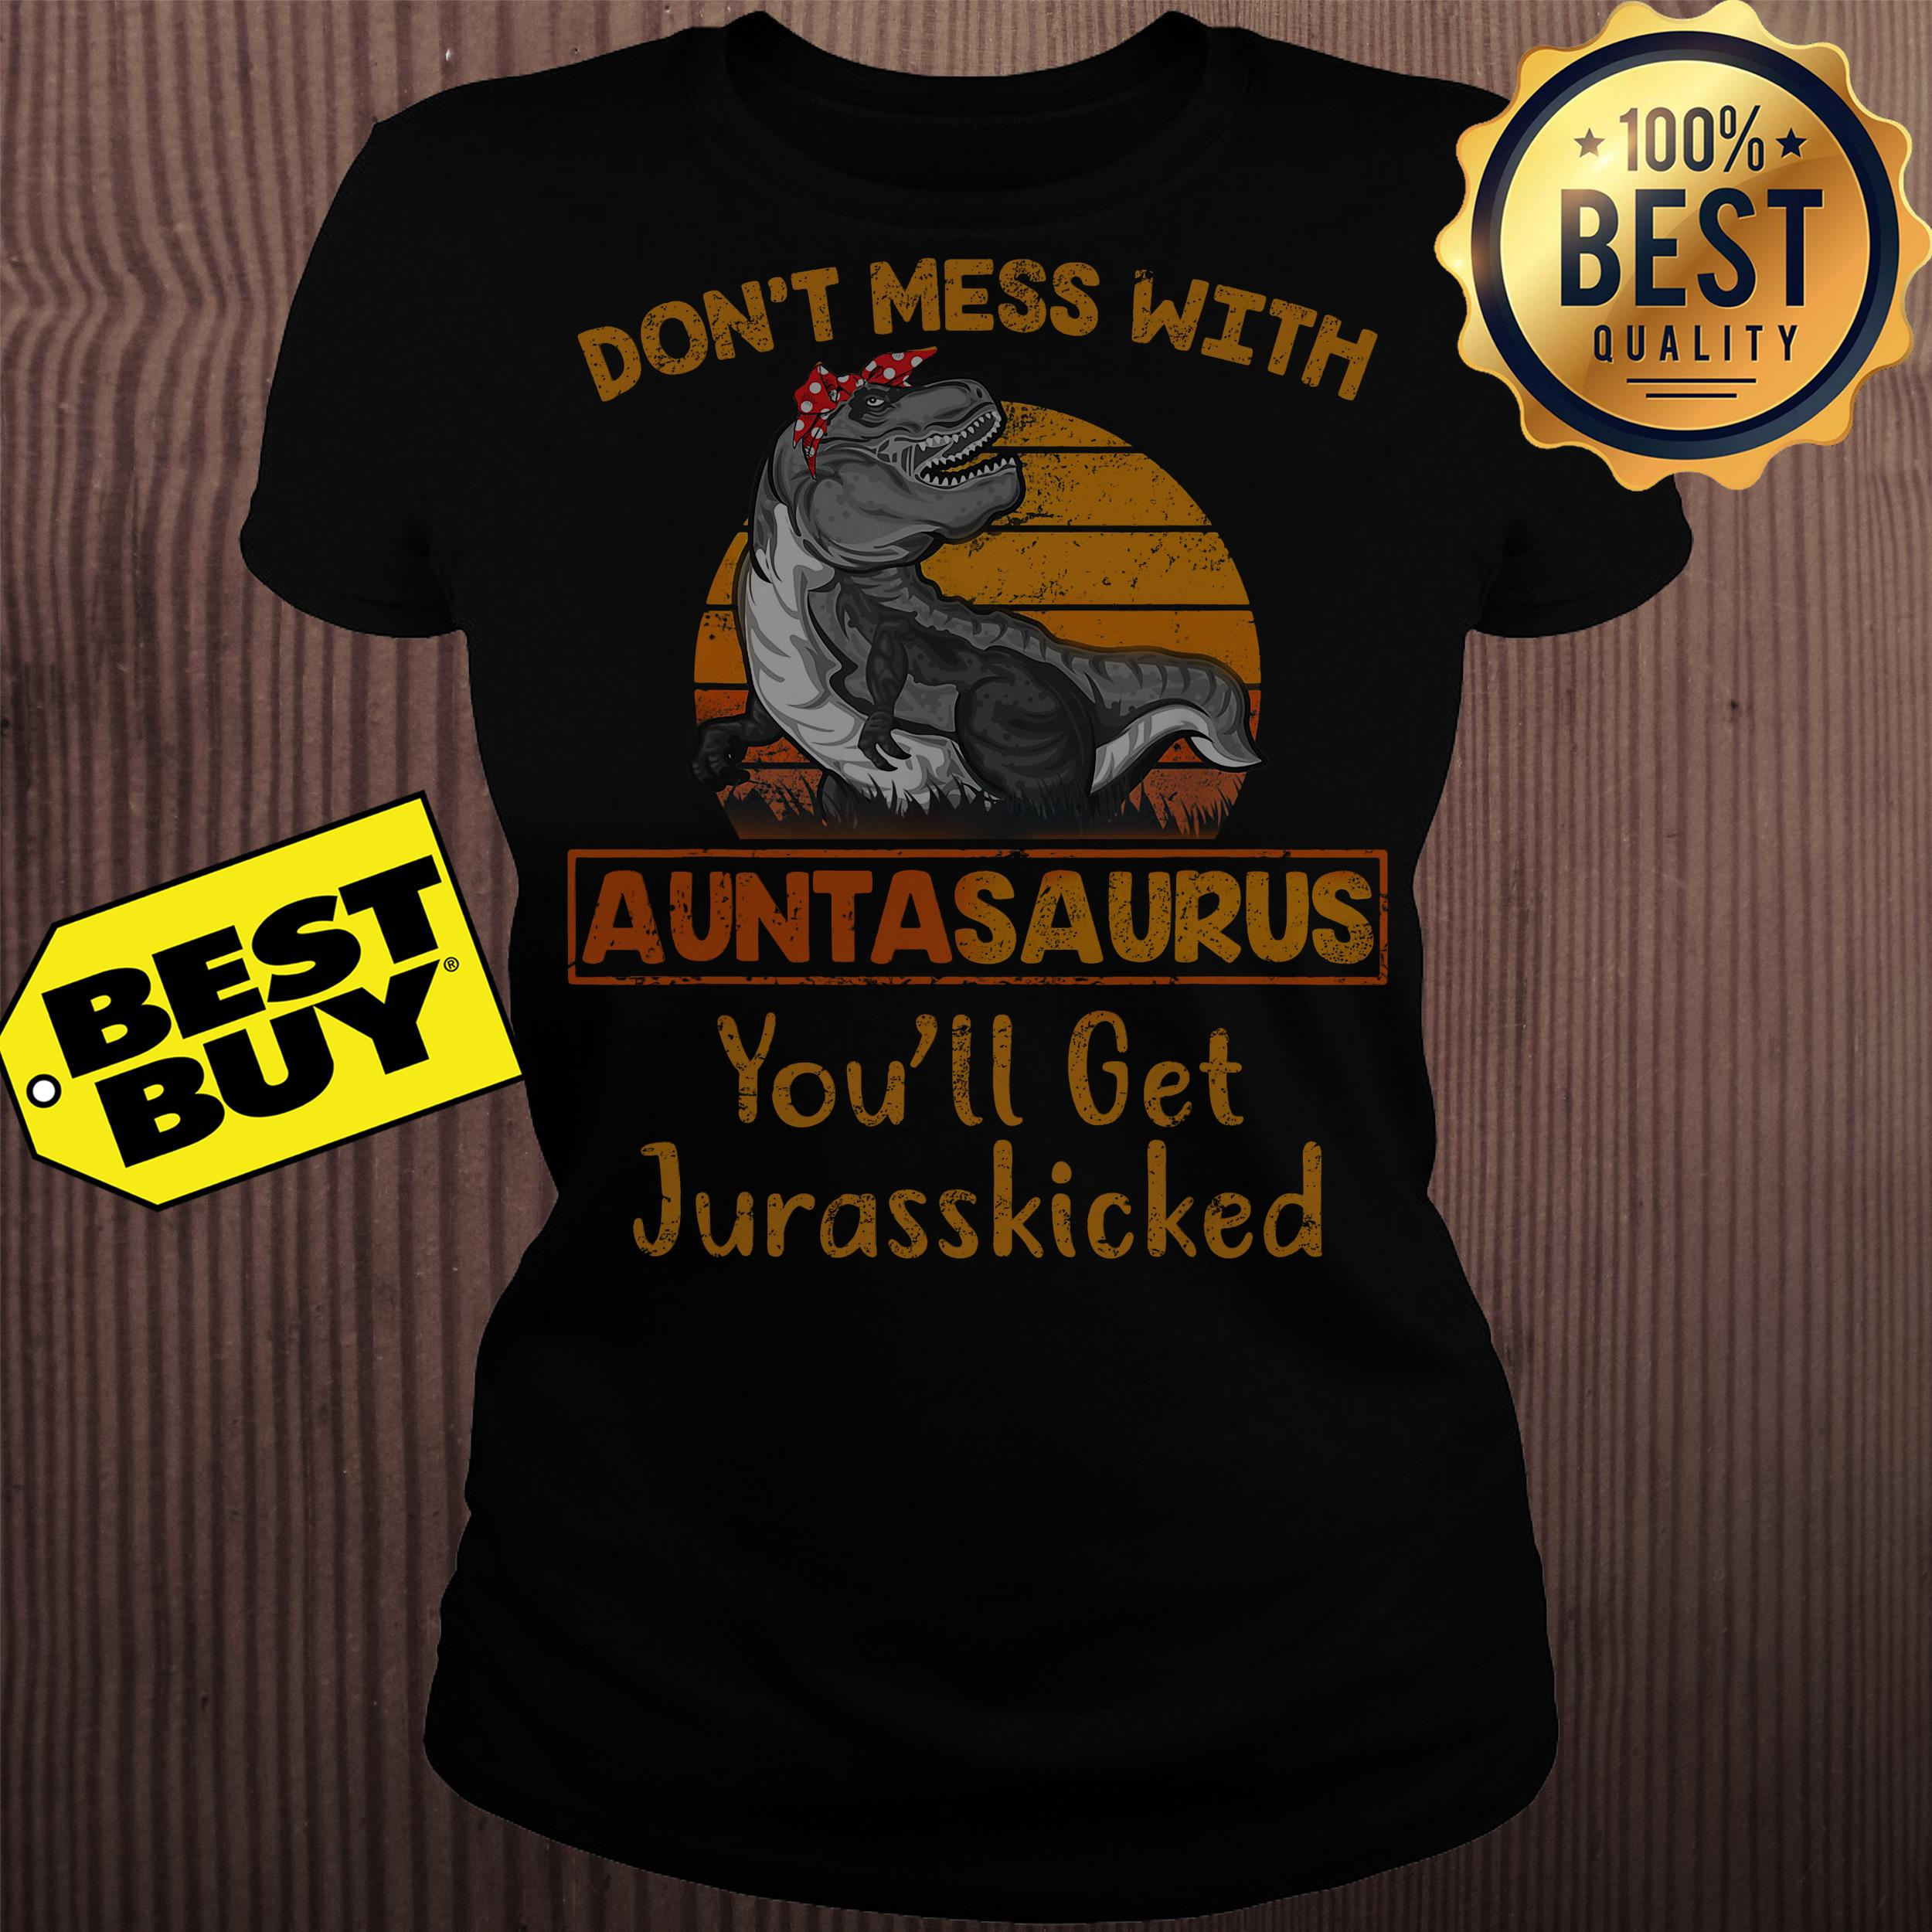 dont mess with auntasaurus youll get jurasskicked ladies tee - Don't mess with auntasaurus you'll get jurasskicked shirt